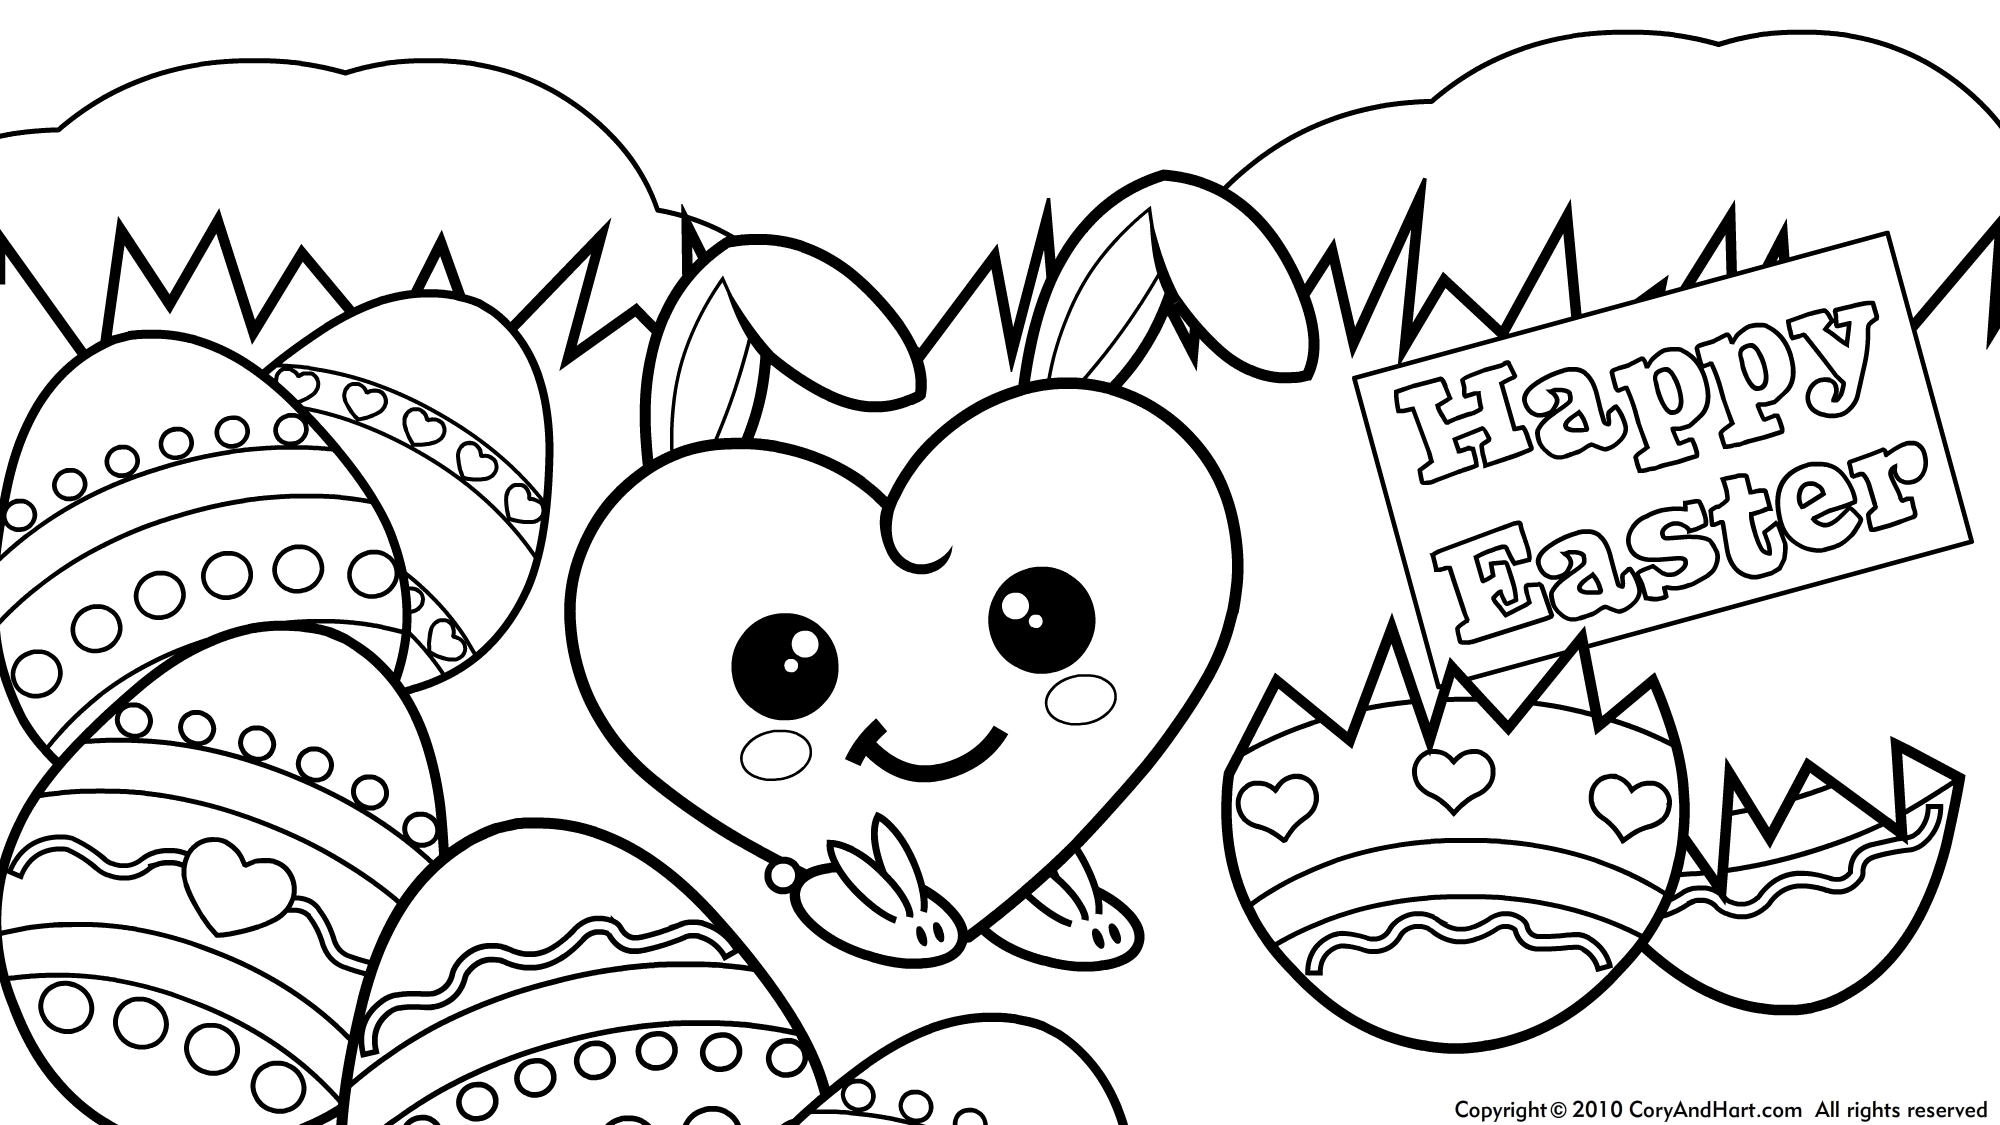 Cute Easter Bunny Drawing at GetDrawings.com | Free for personal use ...